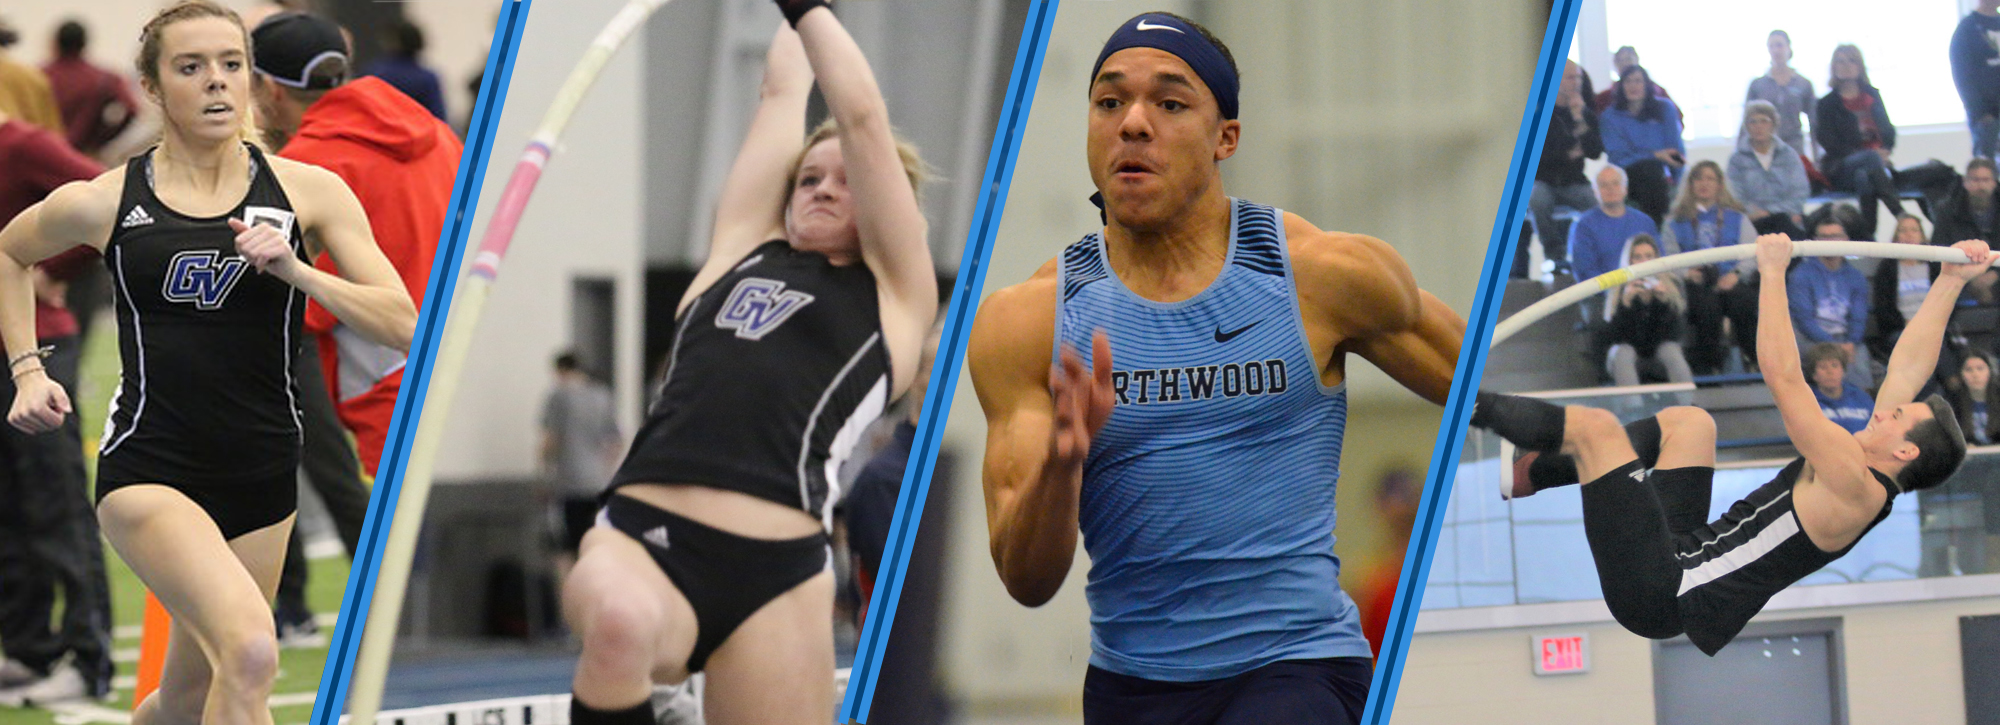 GVSU's Walters, Kimes and Battani, and Northwood's Phillips are named track and field athletes of the week